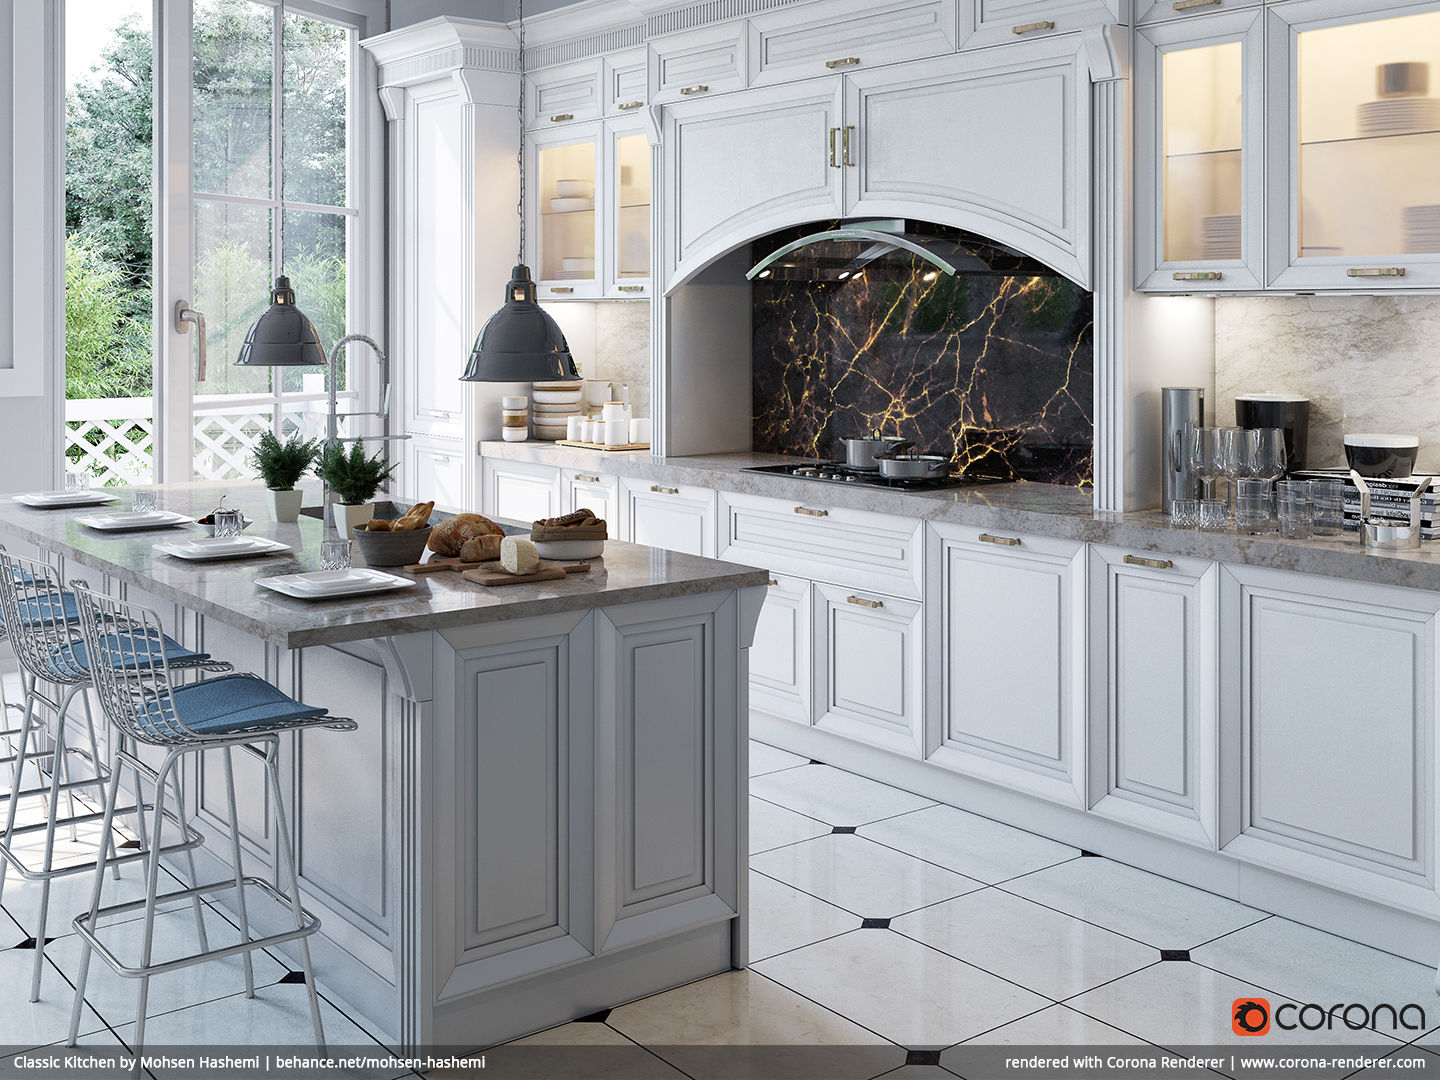 Classic Kitchen 04 by Mohsen Hashemi